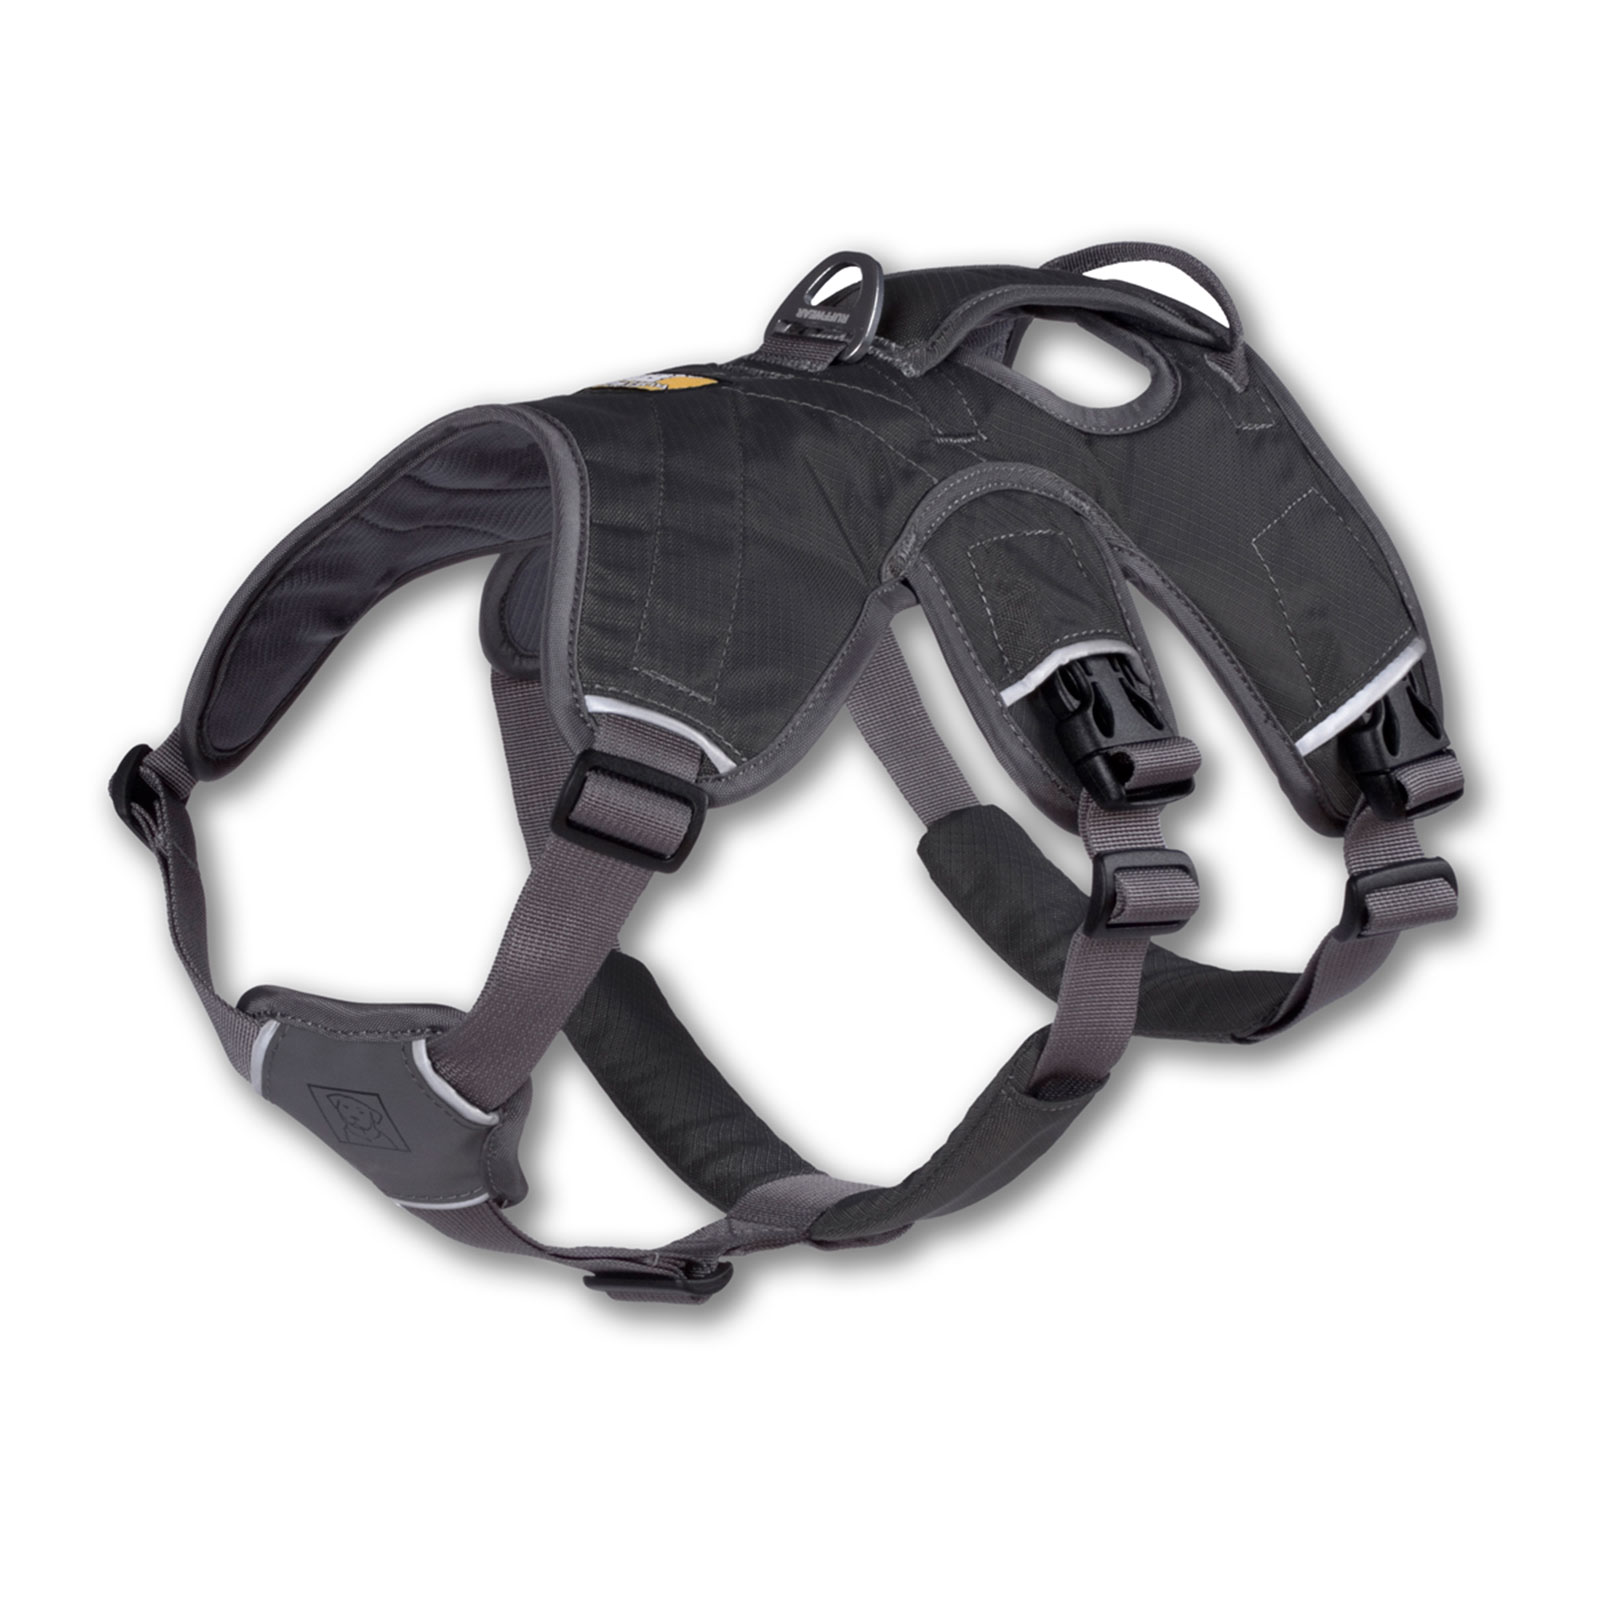 ... Master Harness Outdoor Dog Hiking Gear Reflective Mult Iuse New | eBay